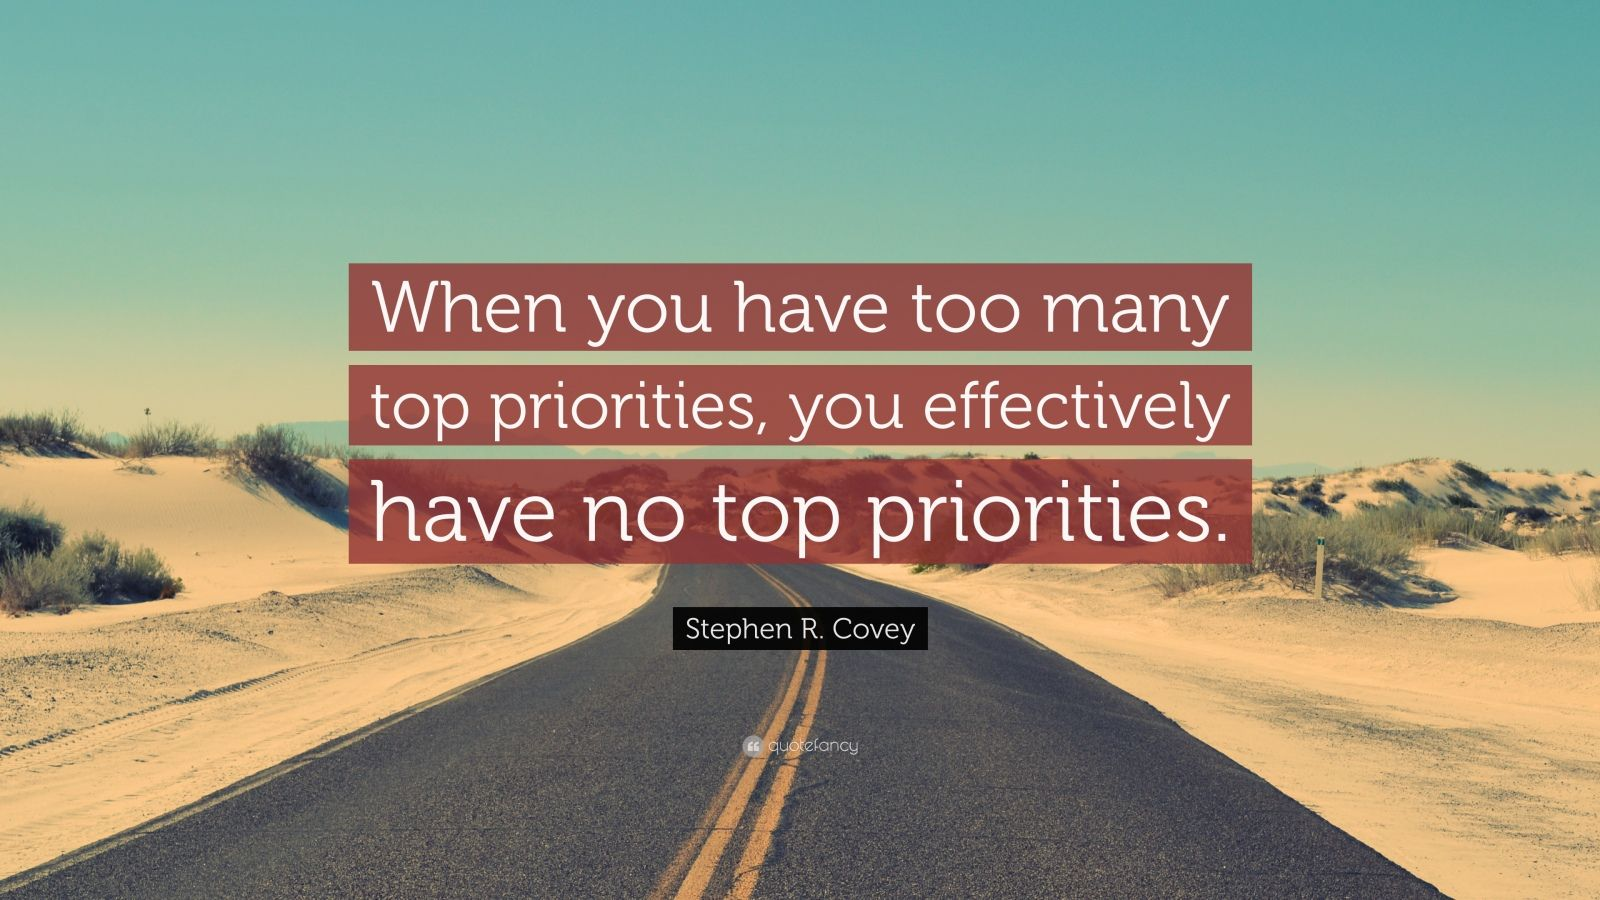 """Stephen R. Covey Quote: """"When you have too many top priorities, you effectively have no top priorities."""""""